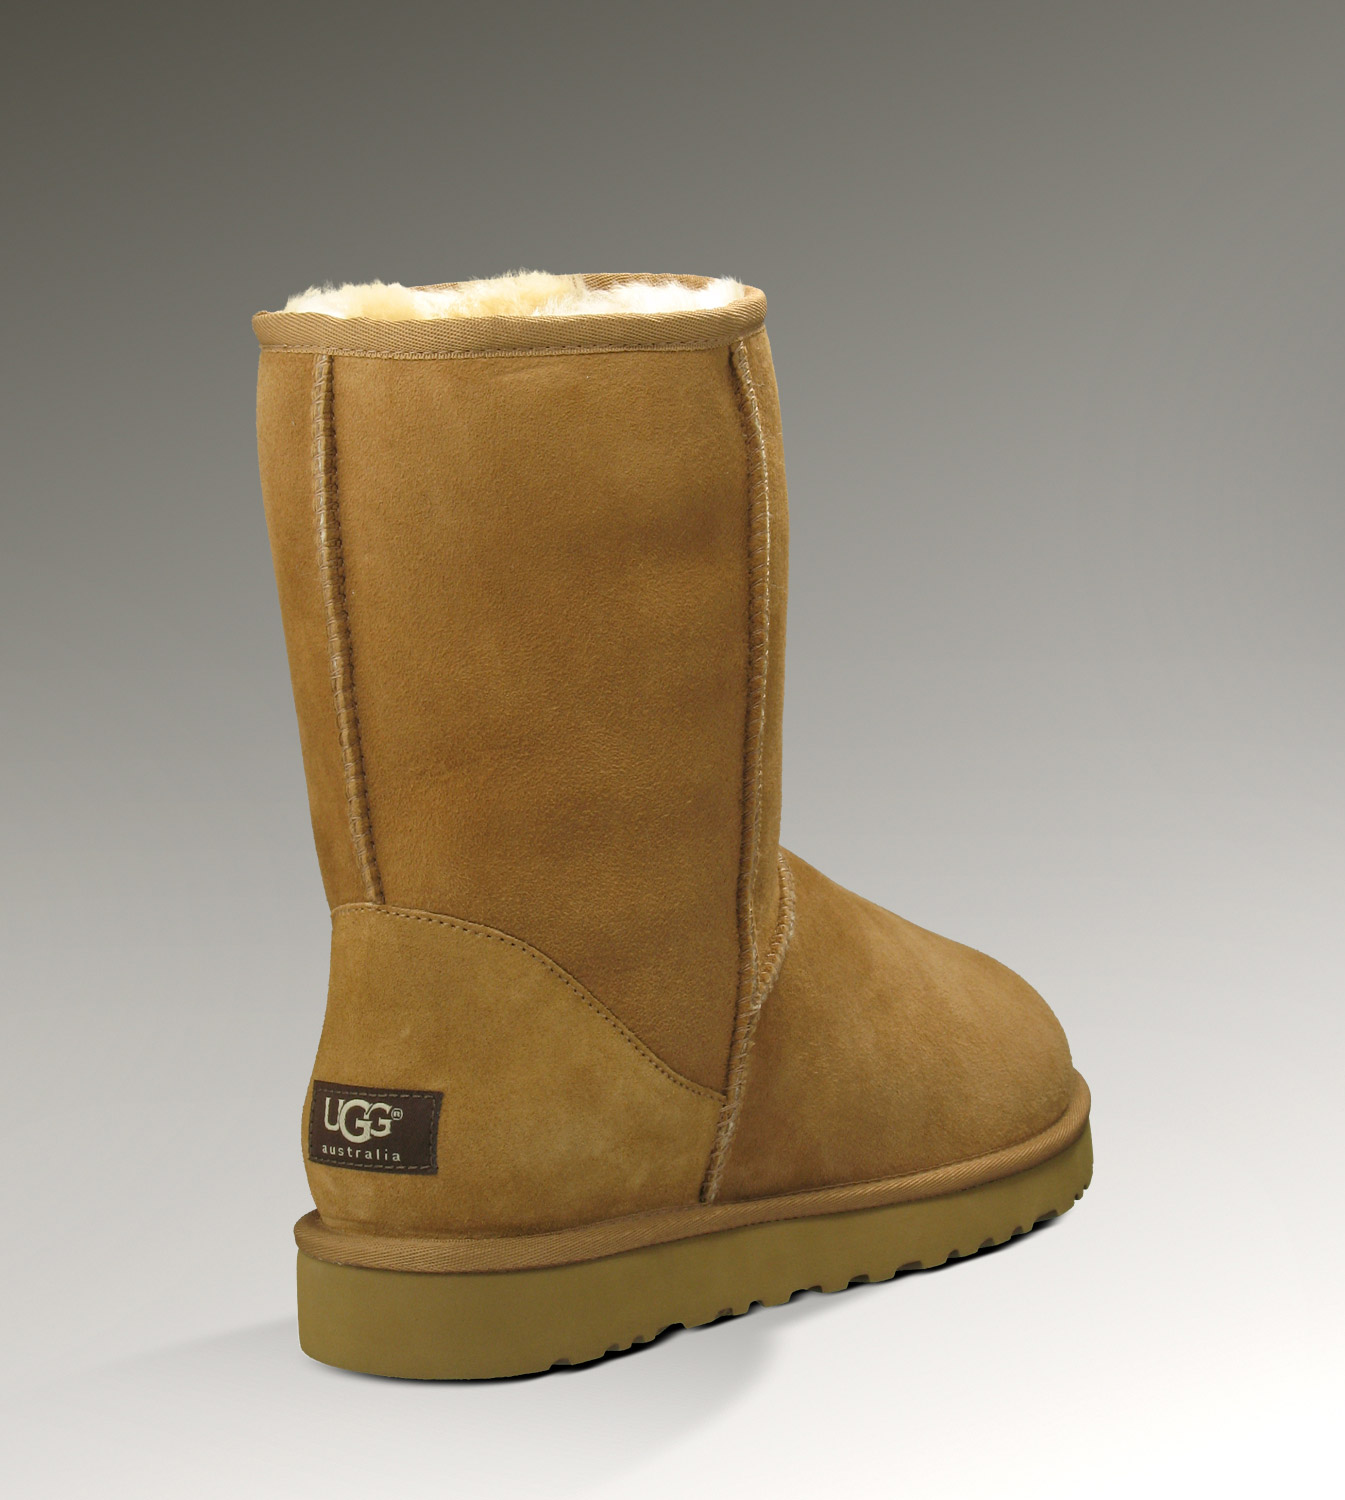 UGG Classic Short 5800 Chestnut Boots